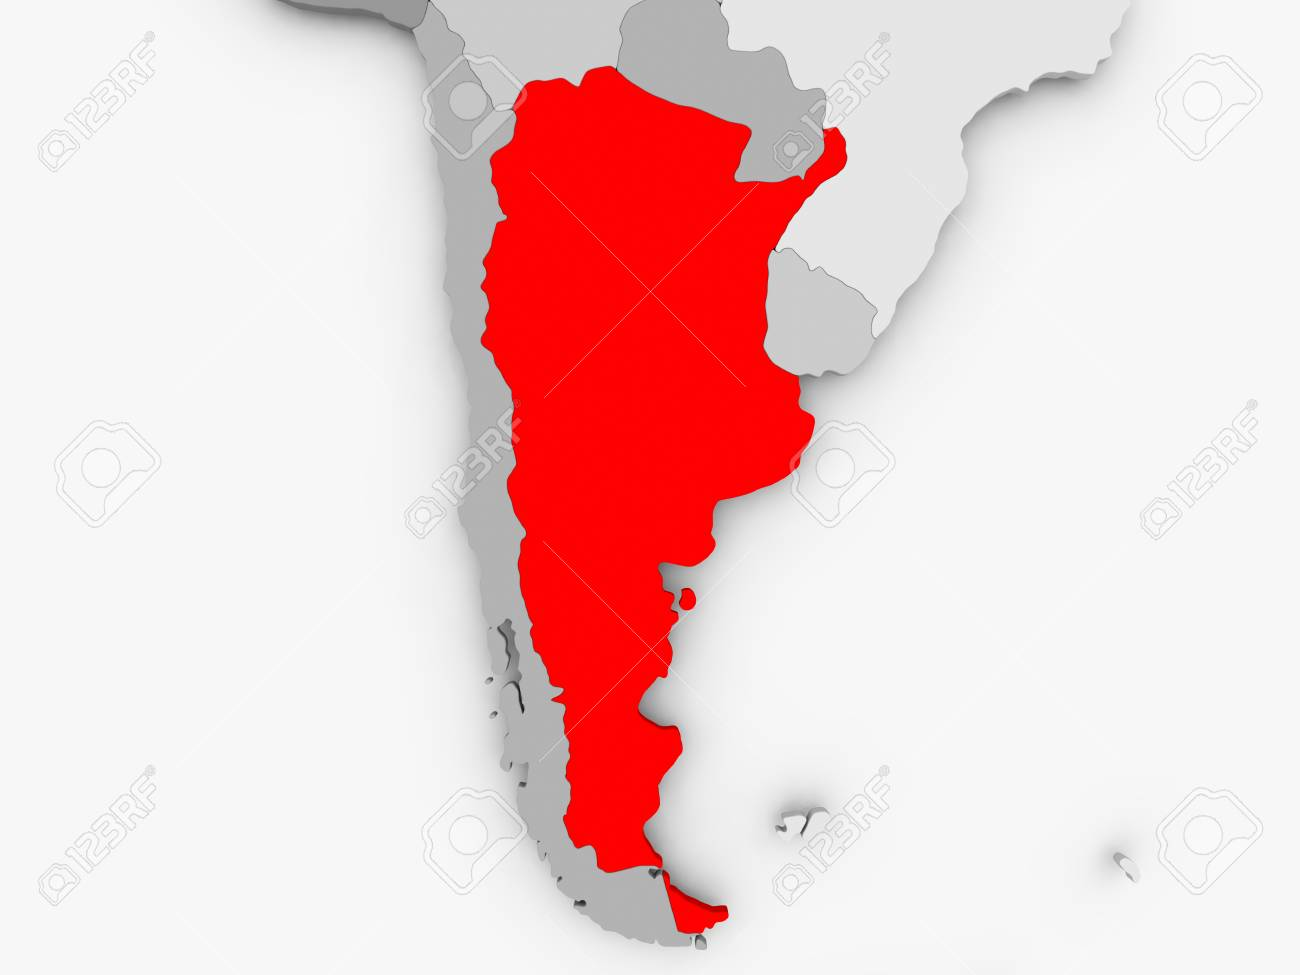 Argentina In Red On Grey Political Map 3D Illustration Stock Photo